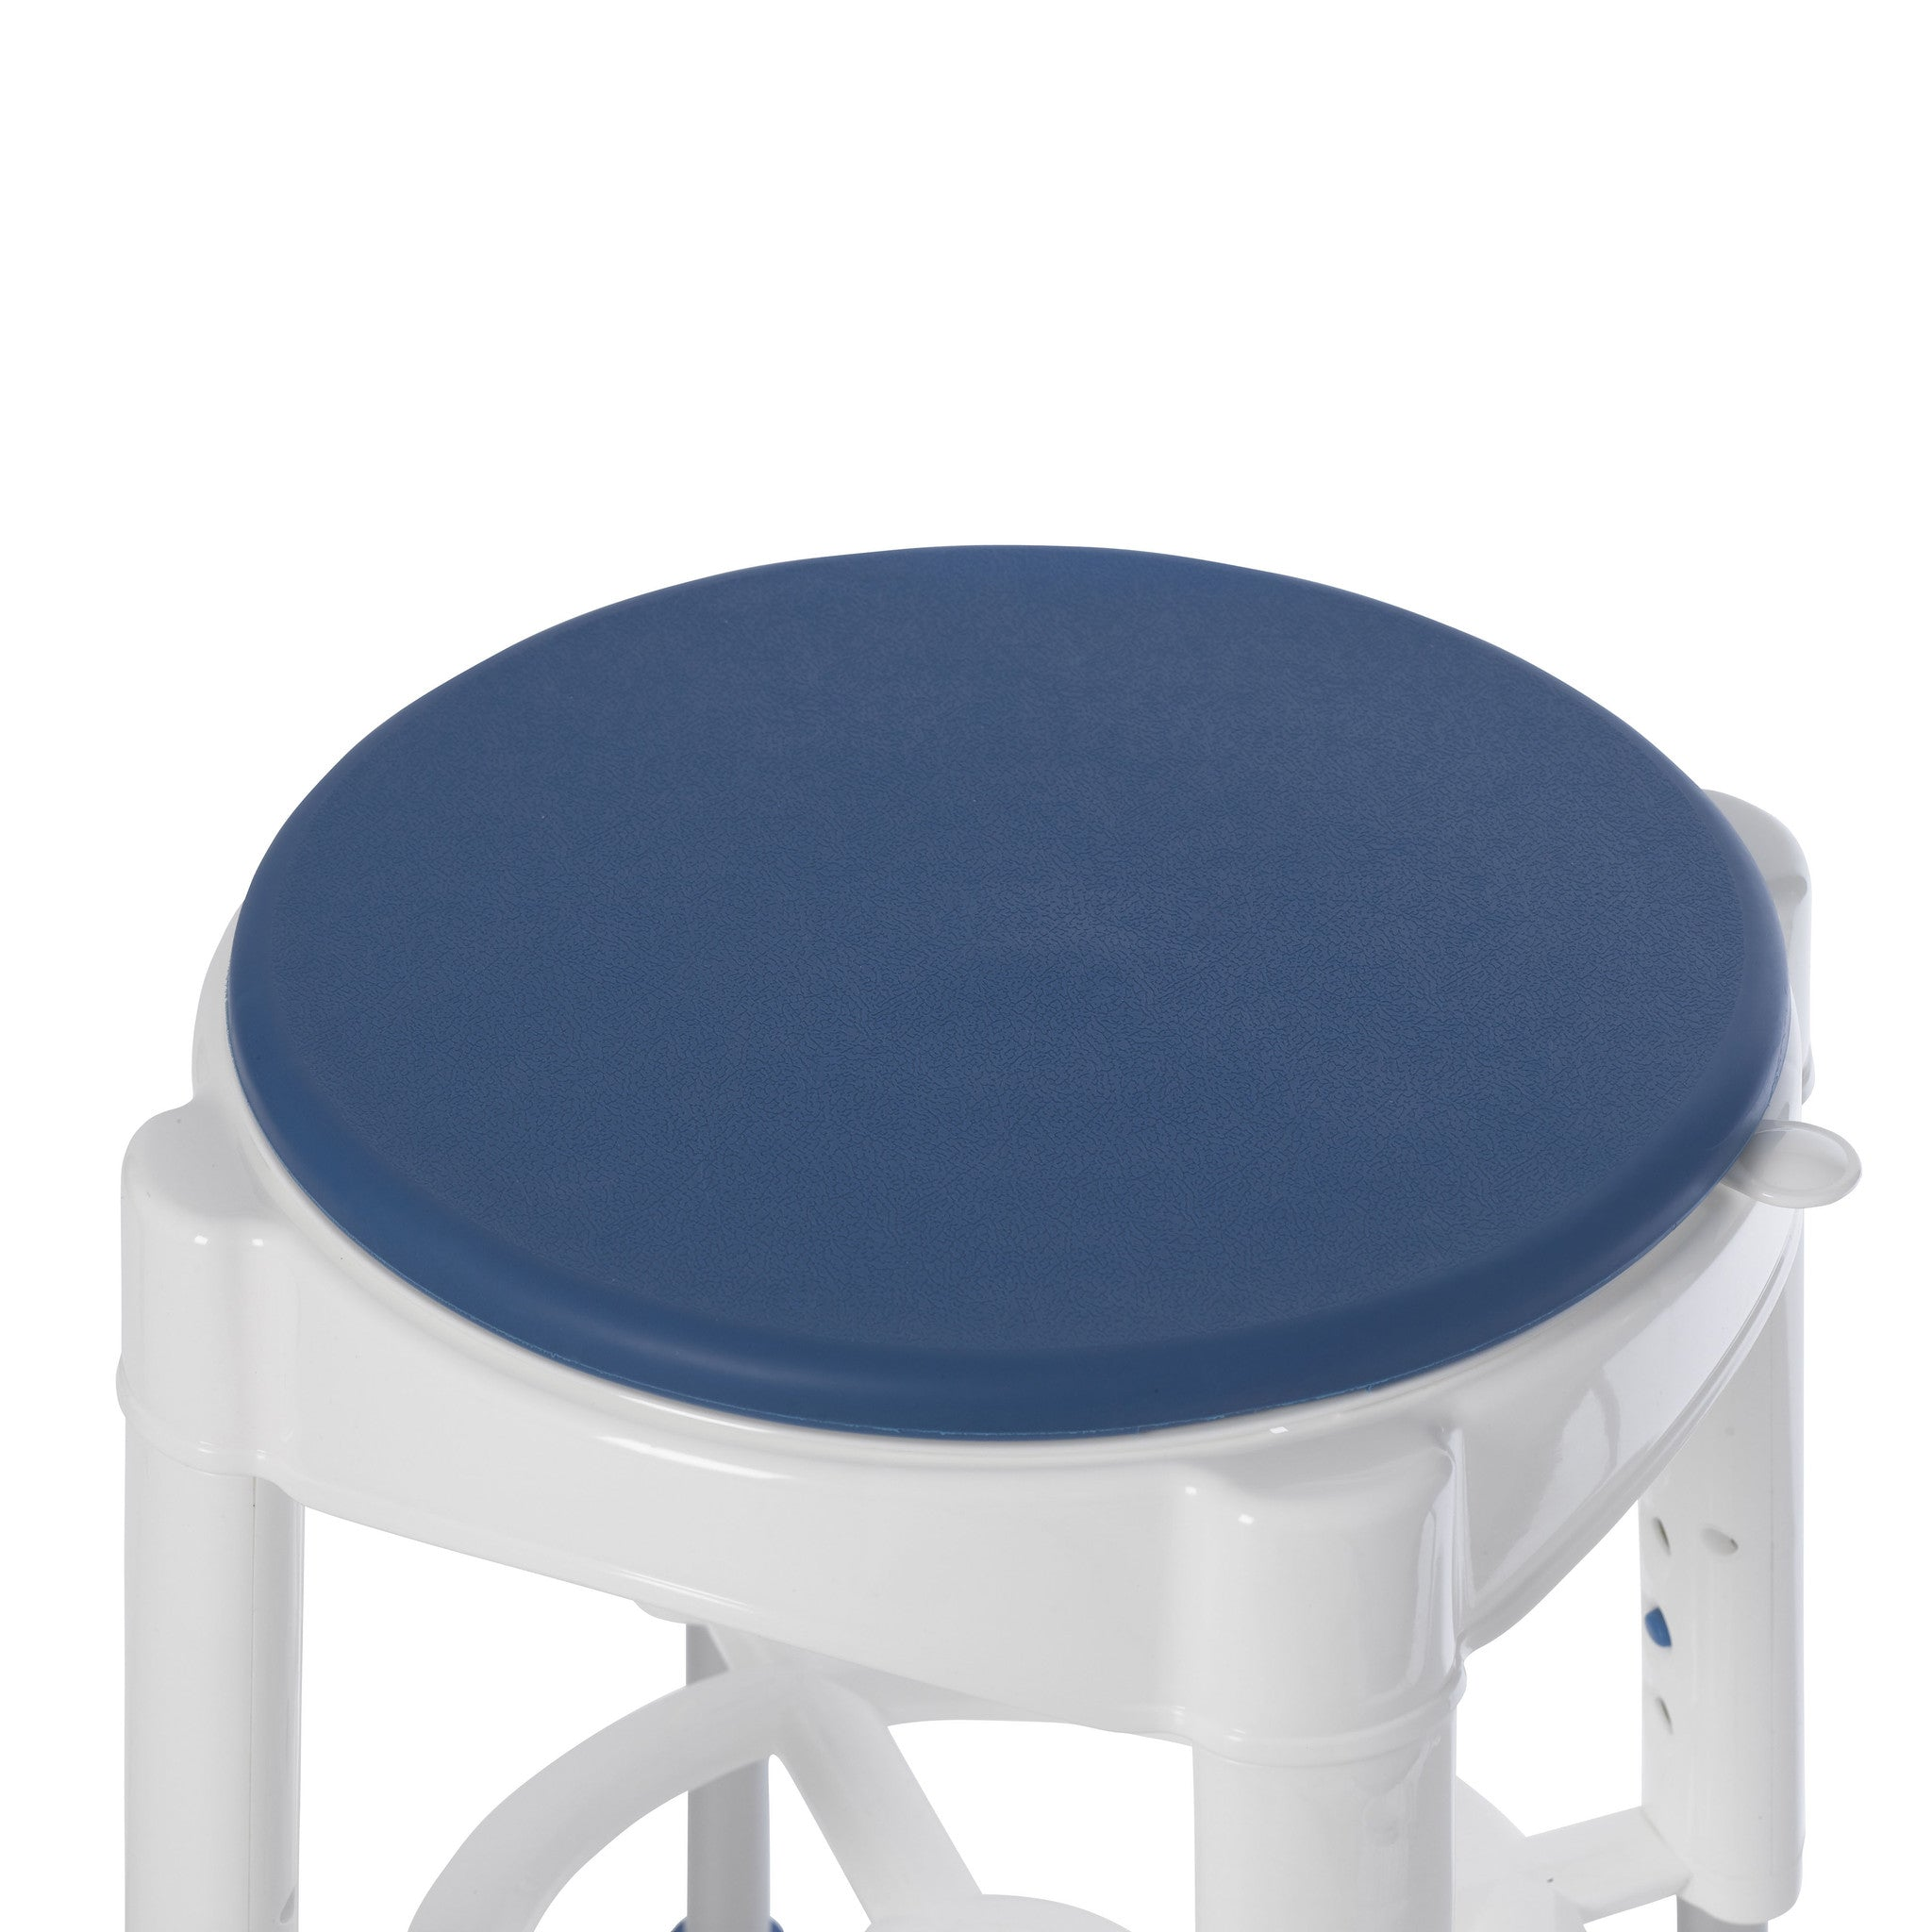 Bathroom Safety Swivel Seat Shower Stool | CSA Medical Supply